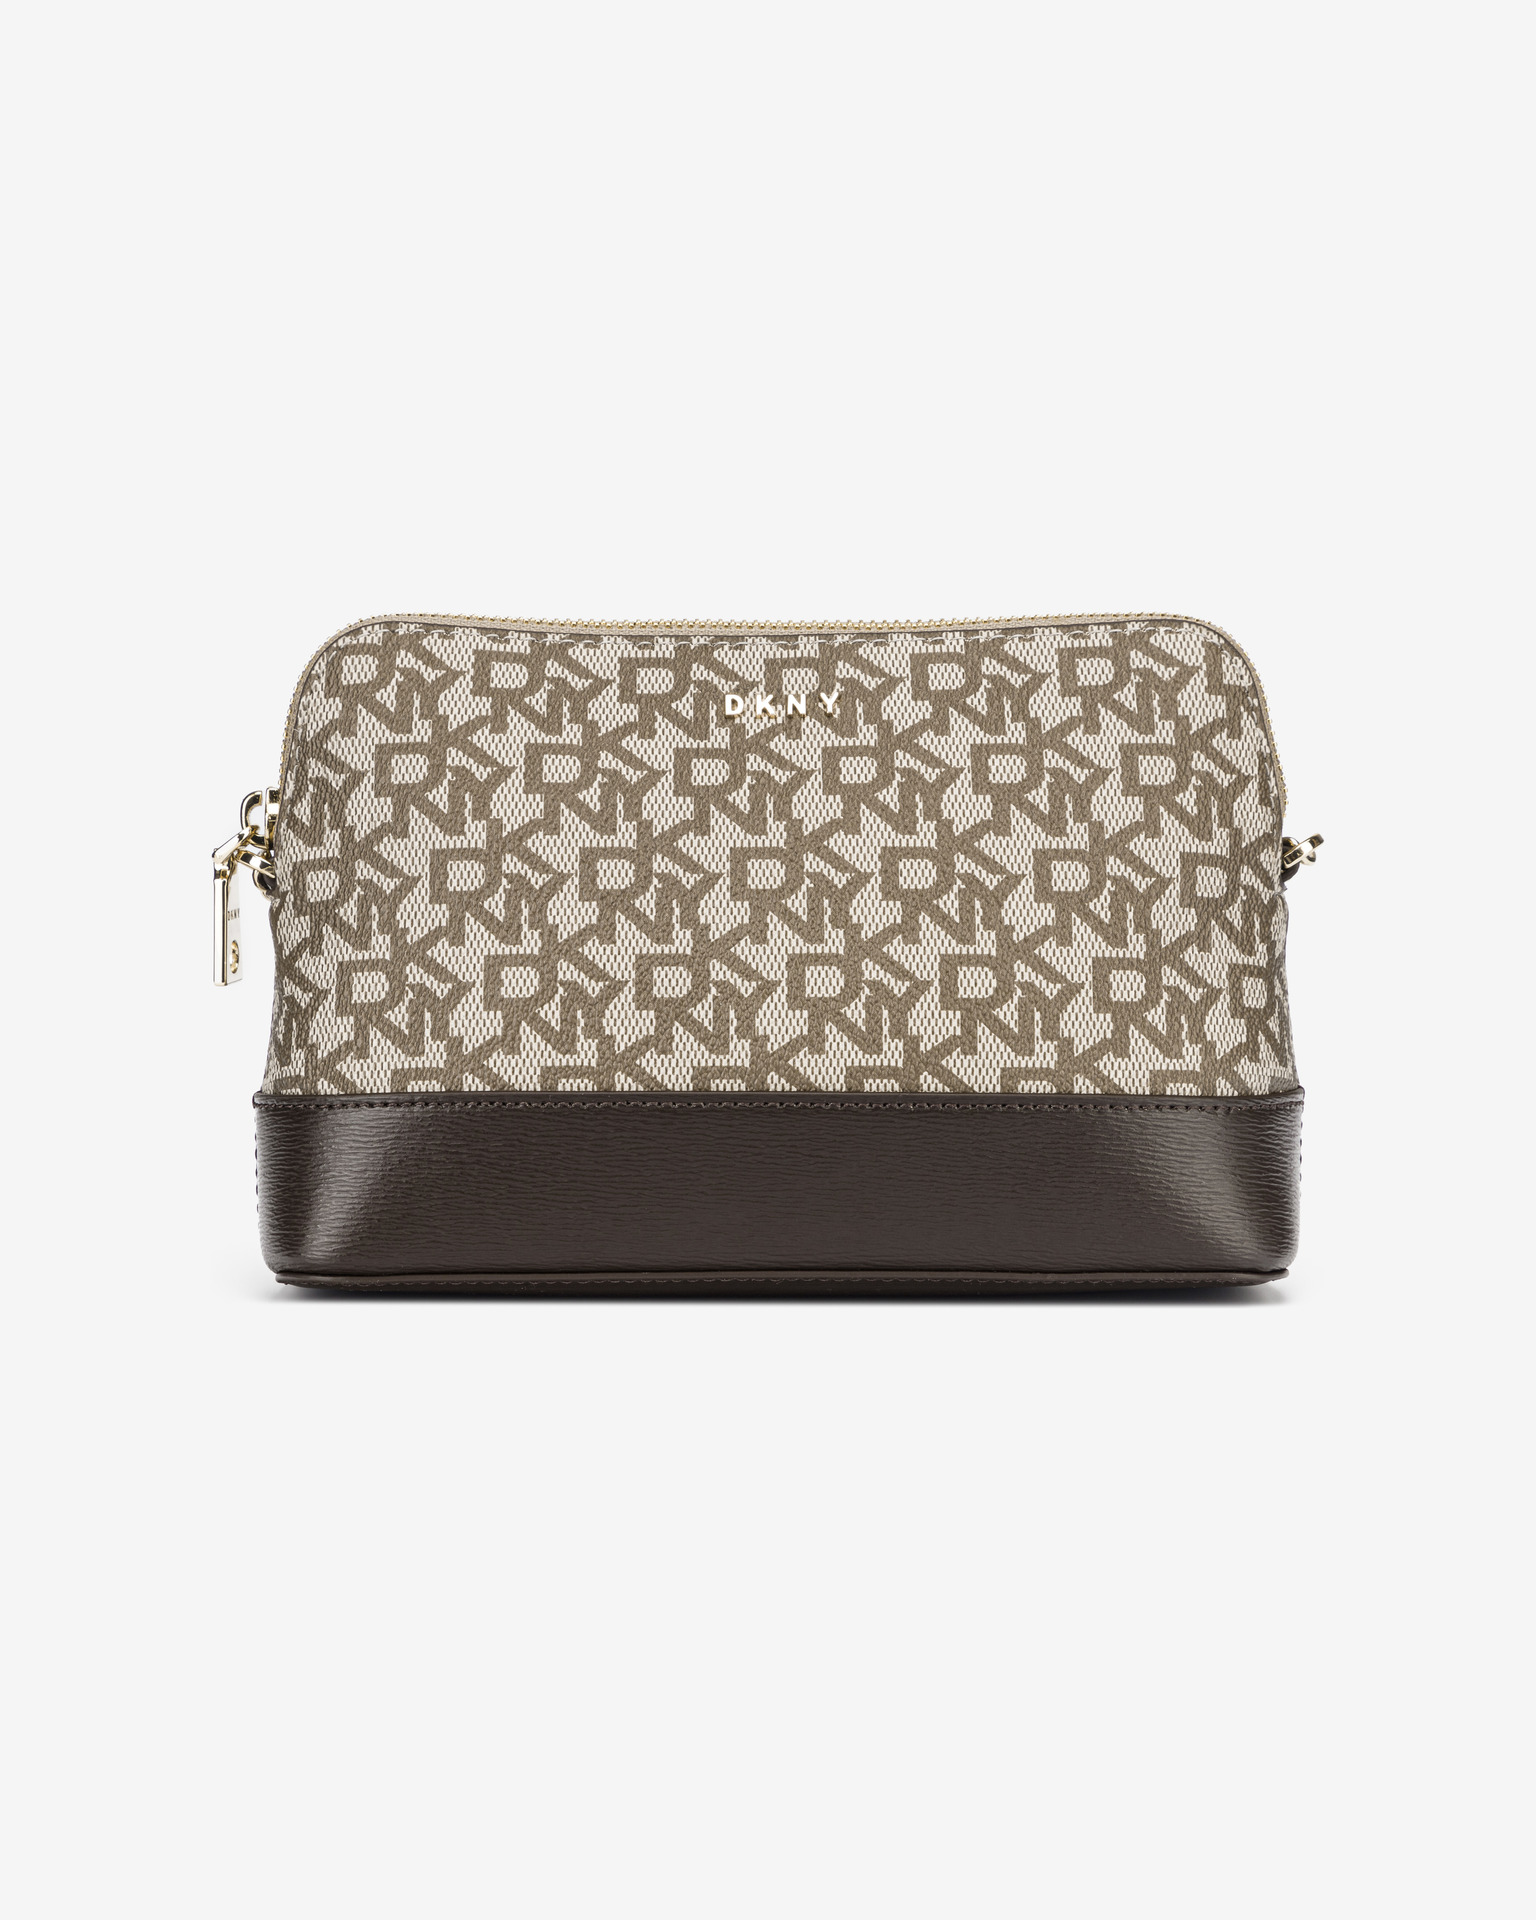 Bryant Dome Cross body bag DKNY